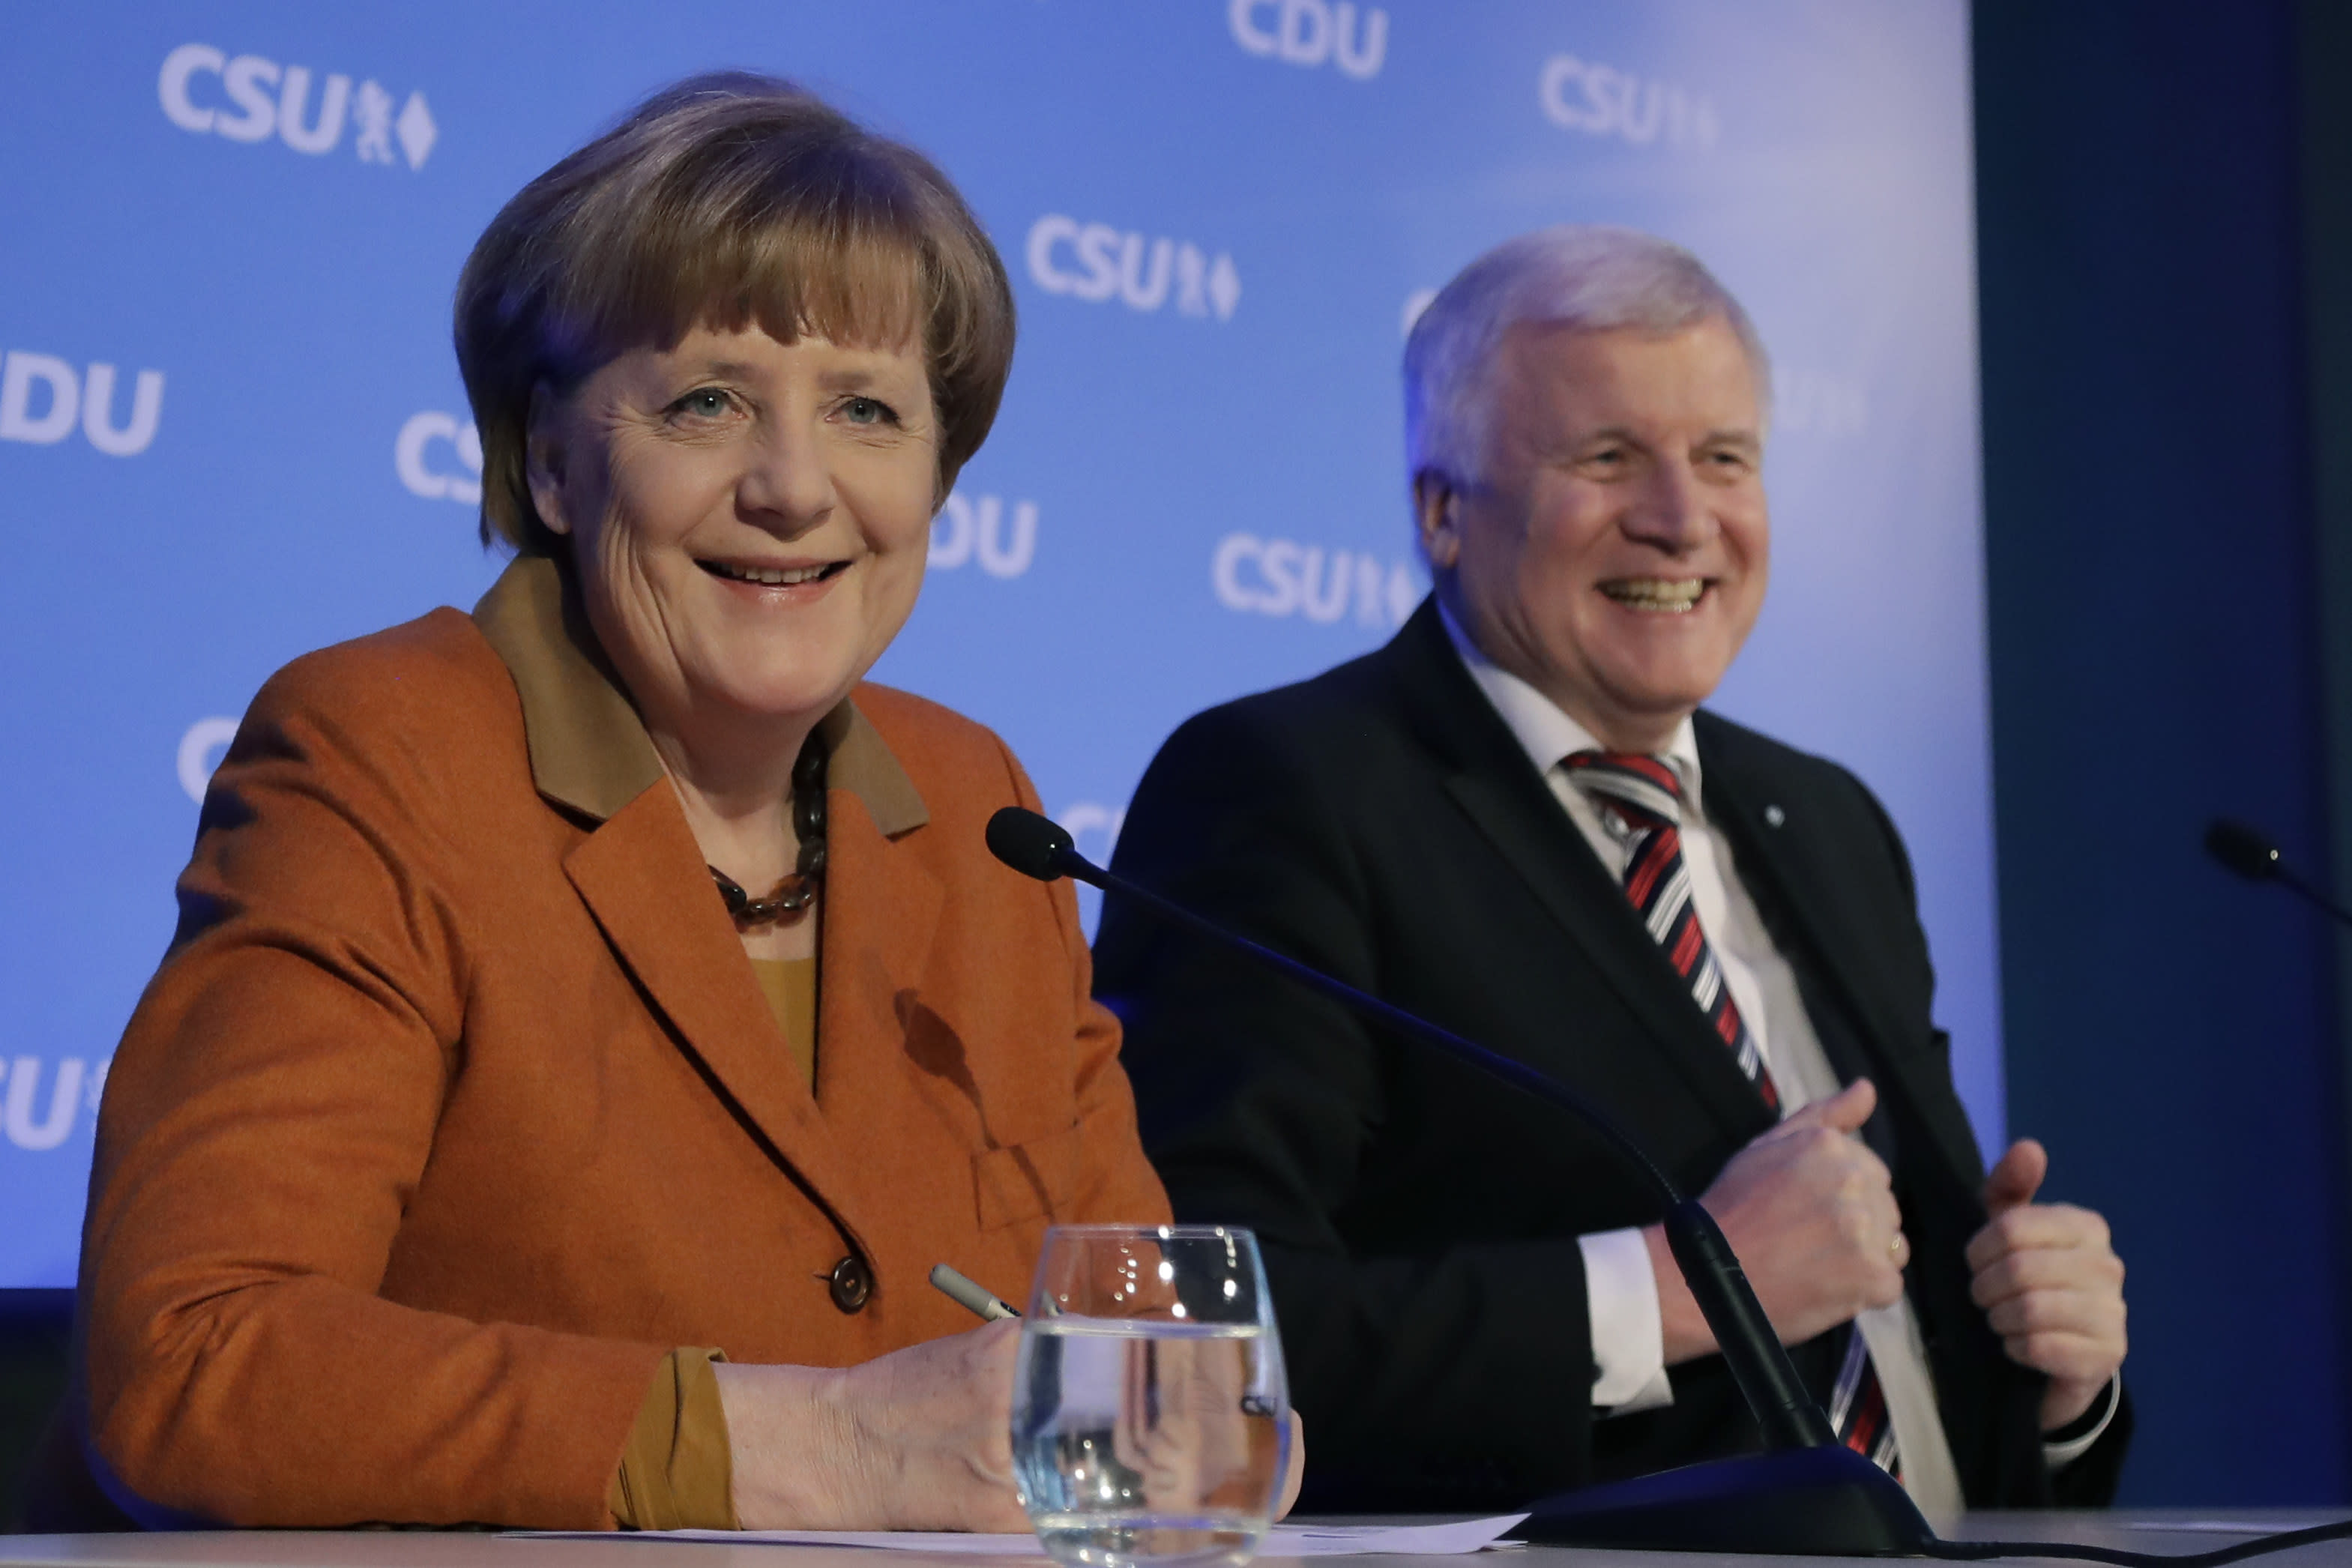 German chancellor and head of the German Christian Democrats, Angela Merkel, left, and Bavarian governor and head of the Christian Social Union party, Horst Seehofer, brief the media during a news conference after a party meeting in Munich, Germany, Monday, Feb. 6, 2017. Merkel was meeting her Bavarian conservative allies in a show of unity following a long-running argument over migrant policy, setting the scene for a joint campaign for German elections in September. (AP Photo/Matthias Schrader)